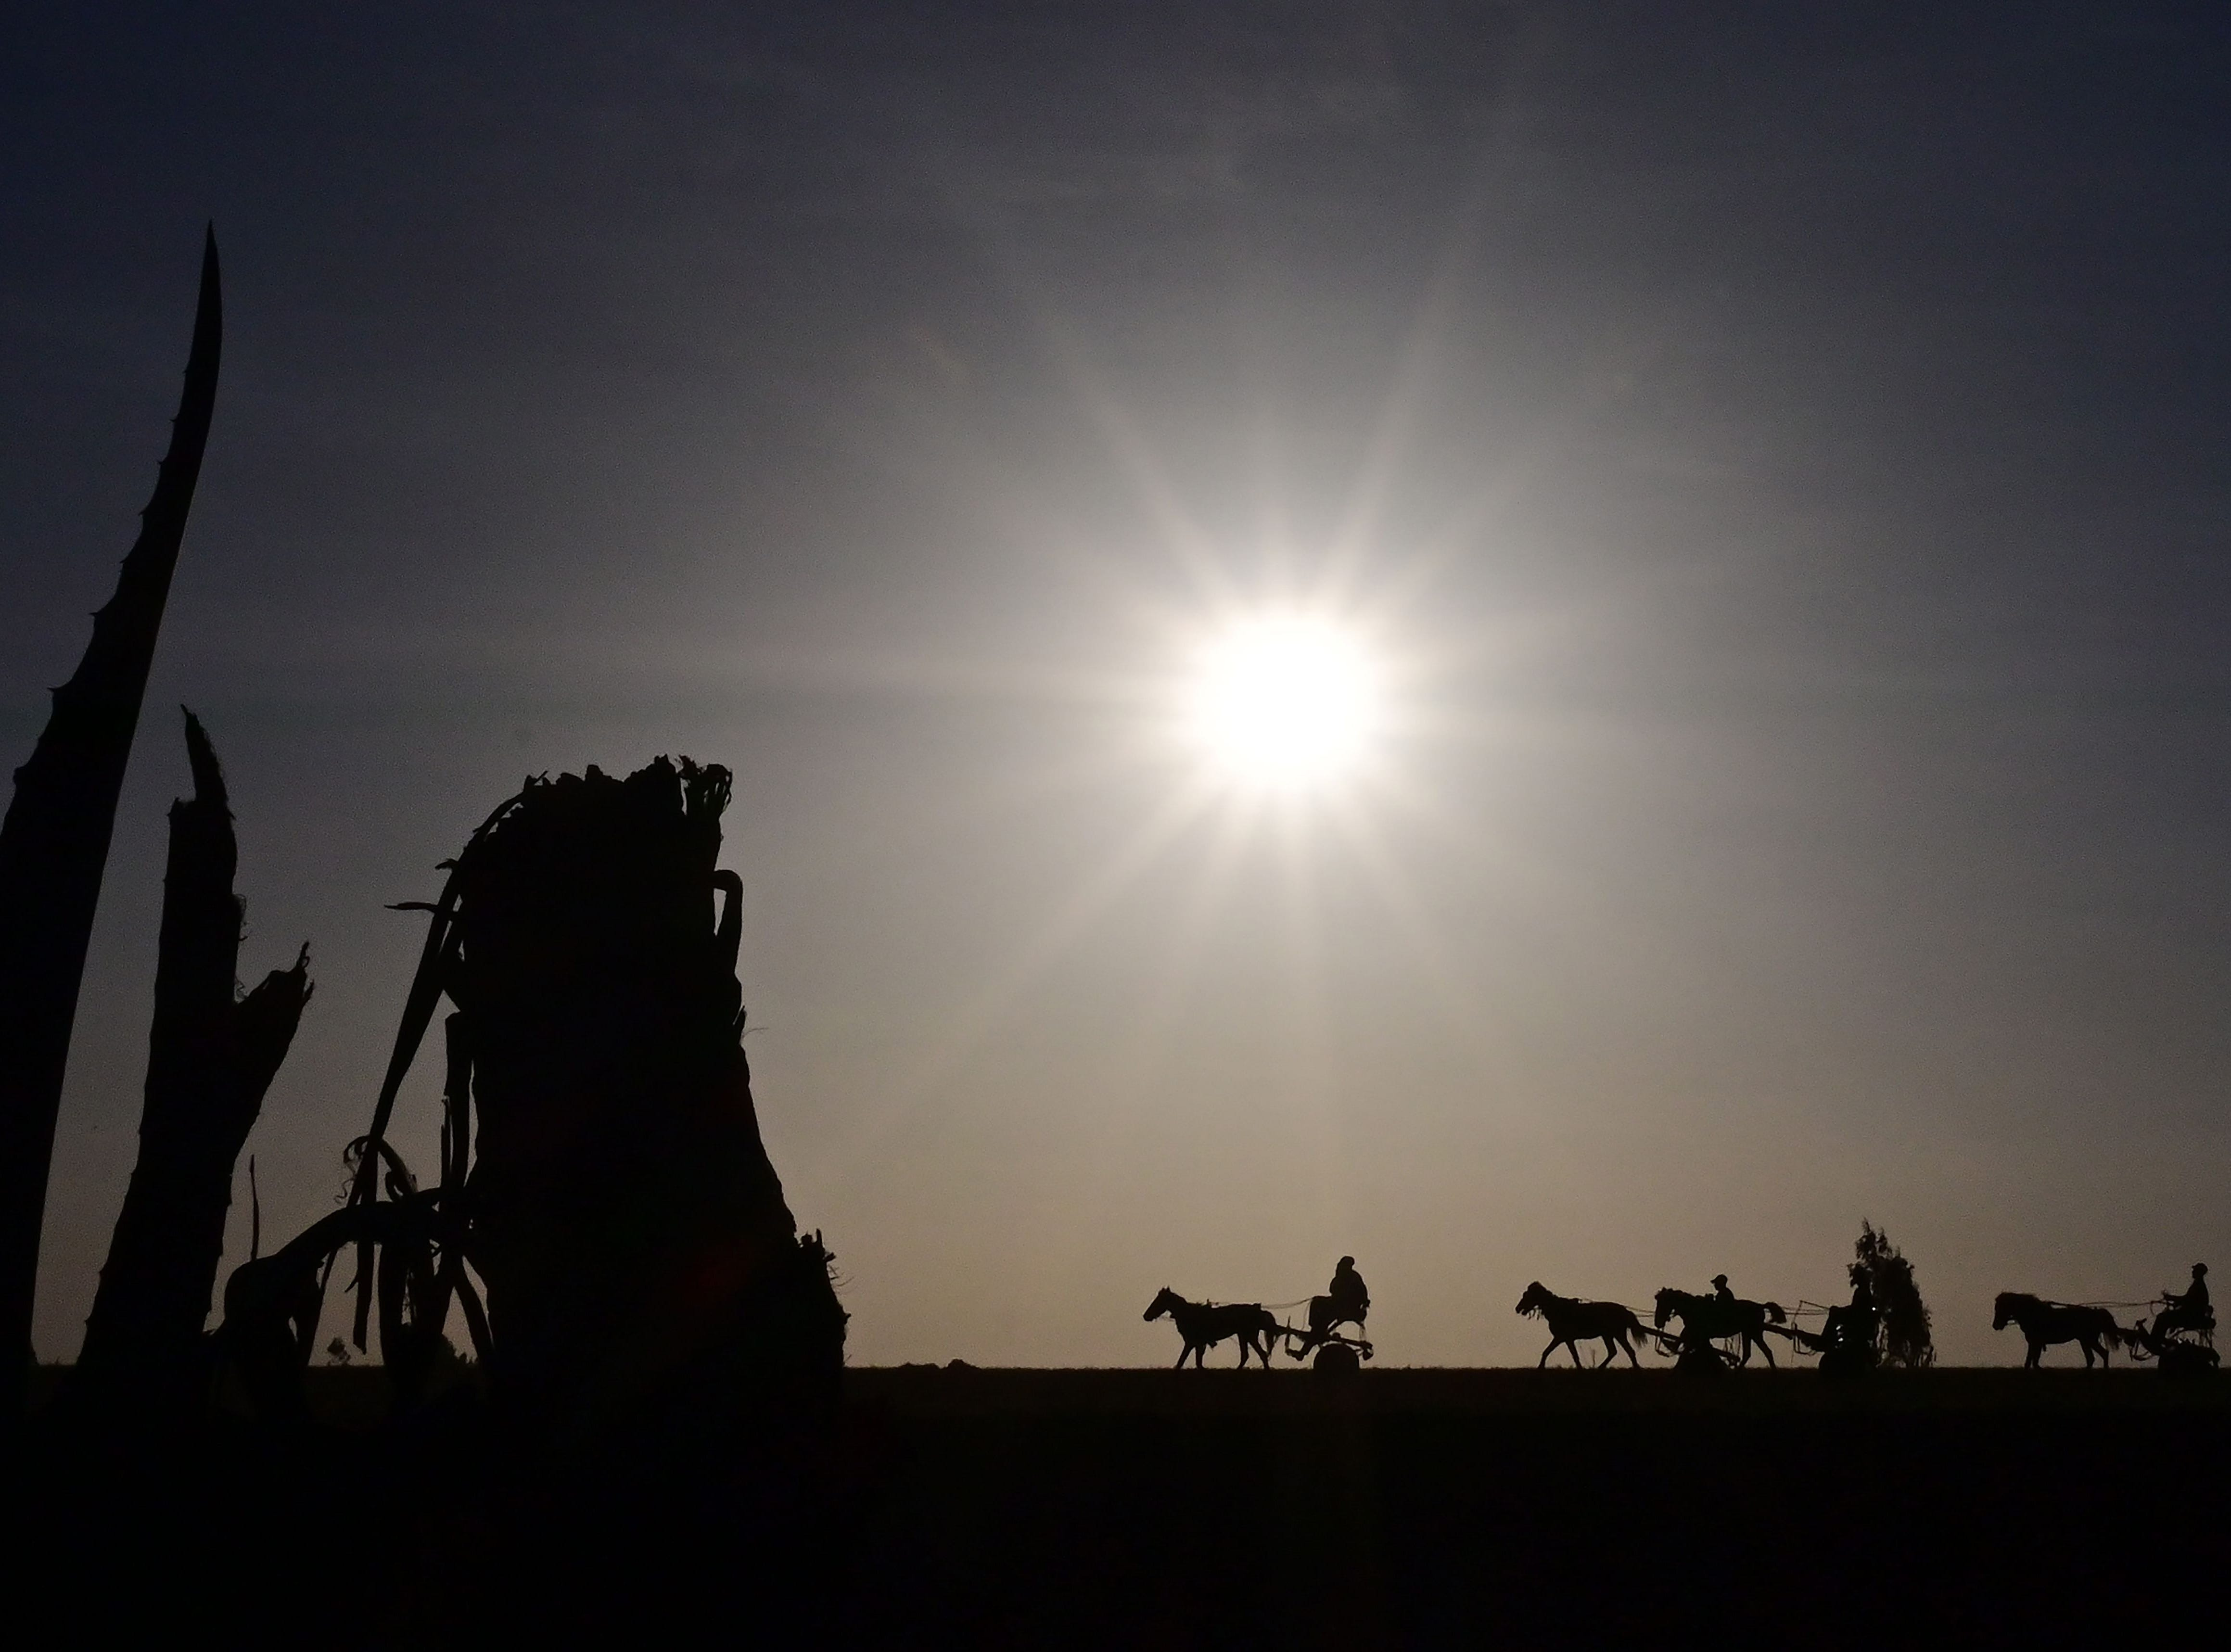 Horse-drawn taxis are silhouetted as they head to collect fares at the crash site of the Ethiopian airways operated by a Boeing 737 MAX aircraft on March 16, 2019 at Hama Quntushele village near Bishoftu in Oromia region.